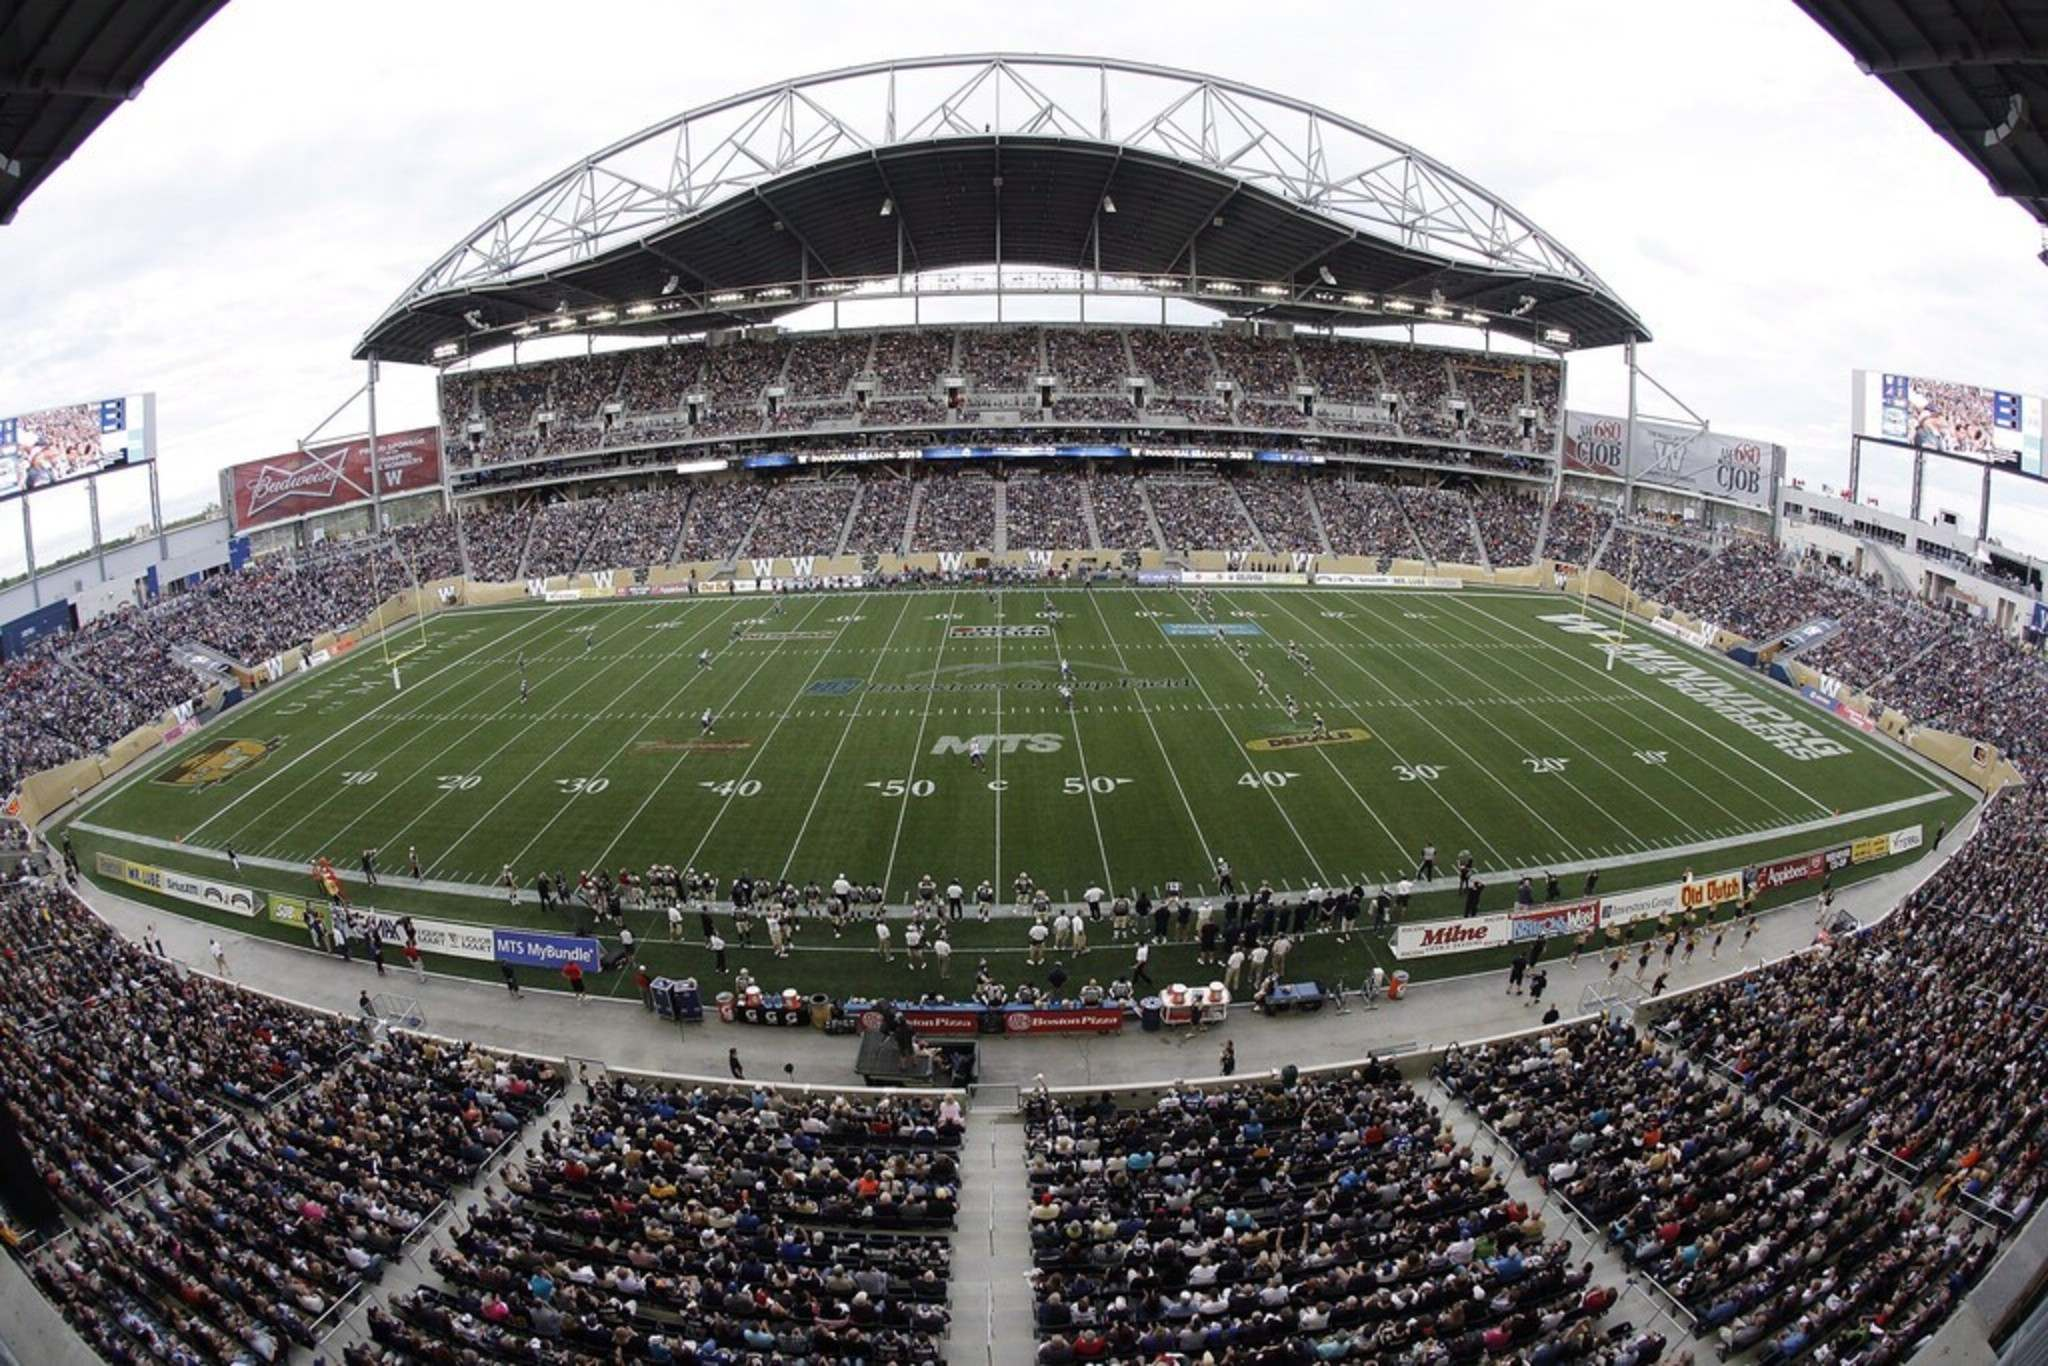 THE CANADIAN PRESS/John Woods</p><p>The City of Winnipeg's Executive Policy Committee ordered a review of their agreements with the Winnipeg Football Club and Triple B Stadium Inc., including what it would take to end them.</p>